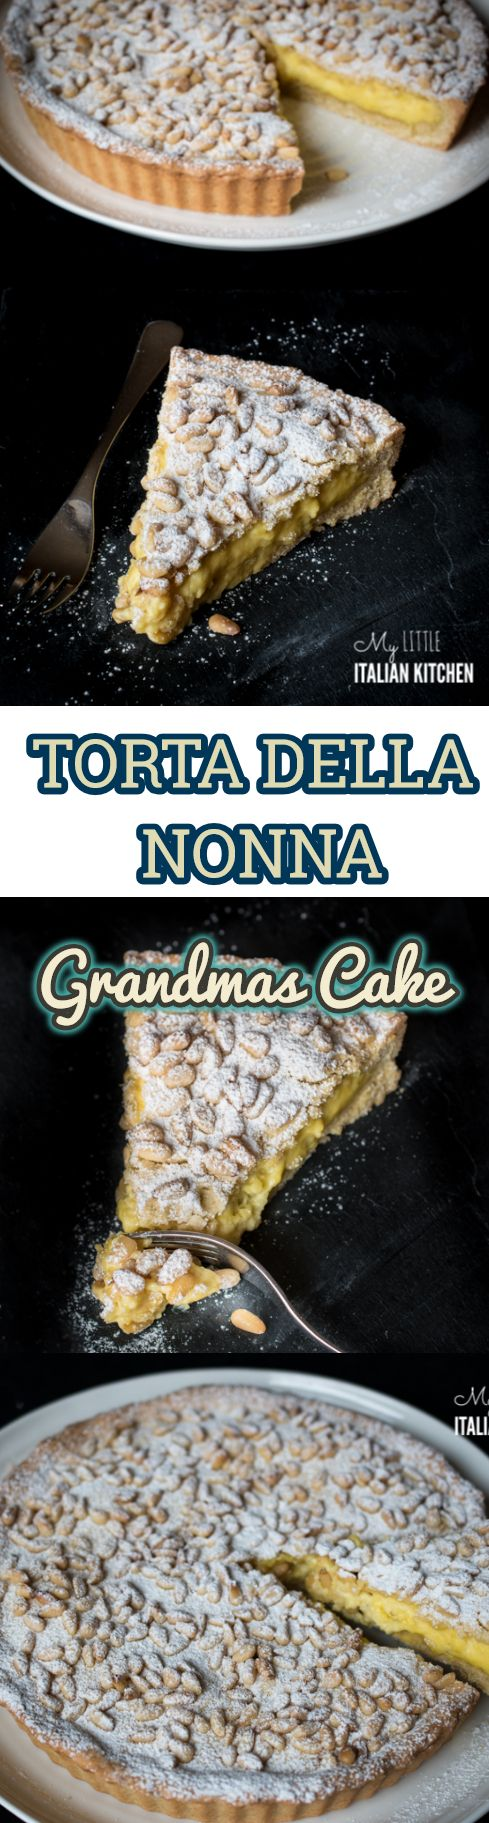 "A delicious perfumed lemon custard wrapped around a crumbly and delicate pastry and finished off with crunchy pinenuts: this is ""La torta della nonna"" or Grandma's cake."